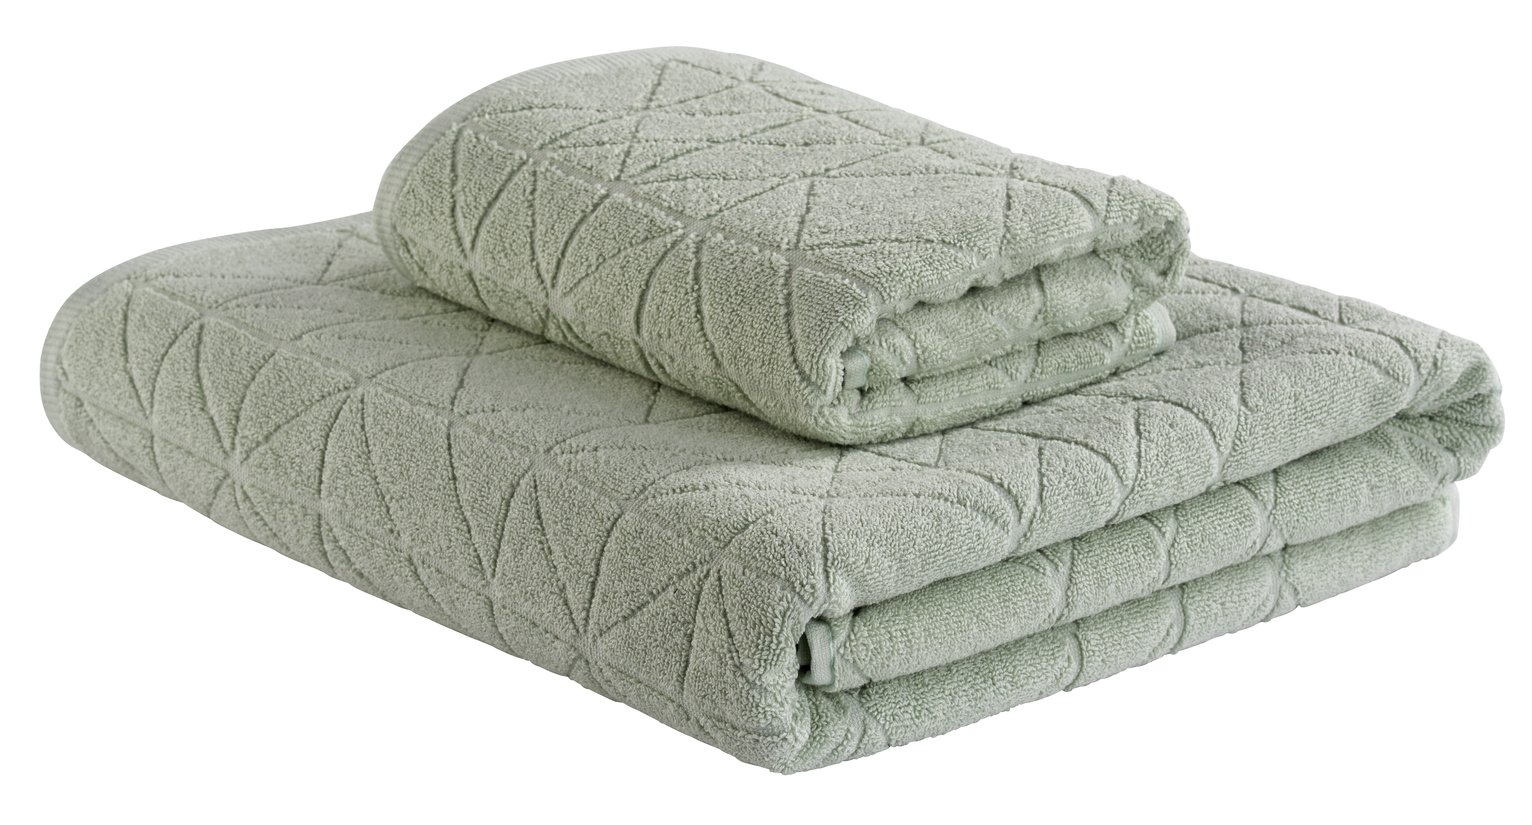 Argos Home Textured 2 Piece Towel Bale - Seafoam